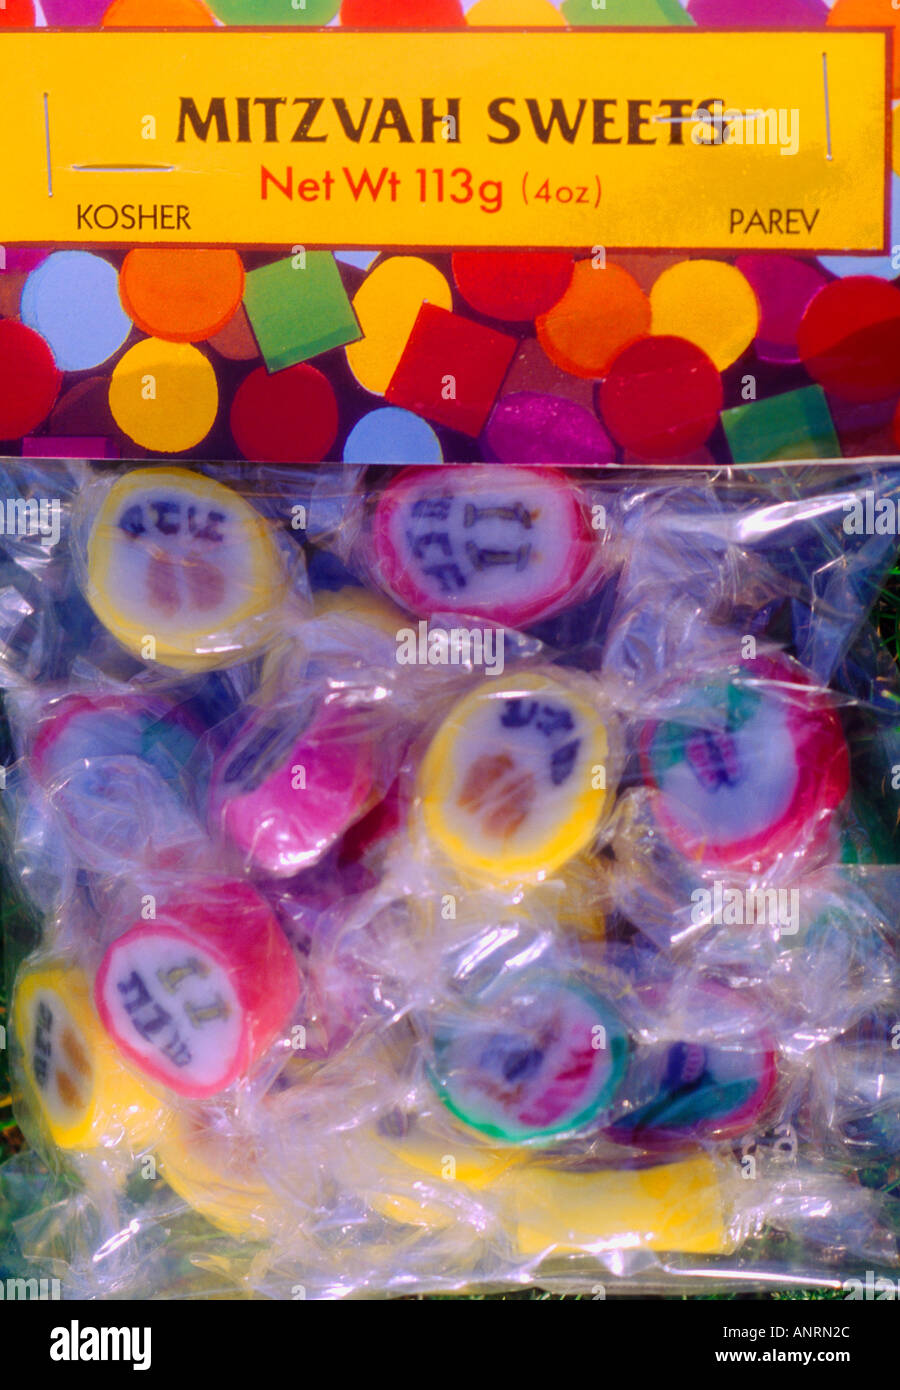 Mitzvah Sweets - Stock Image